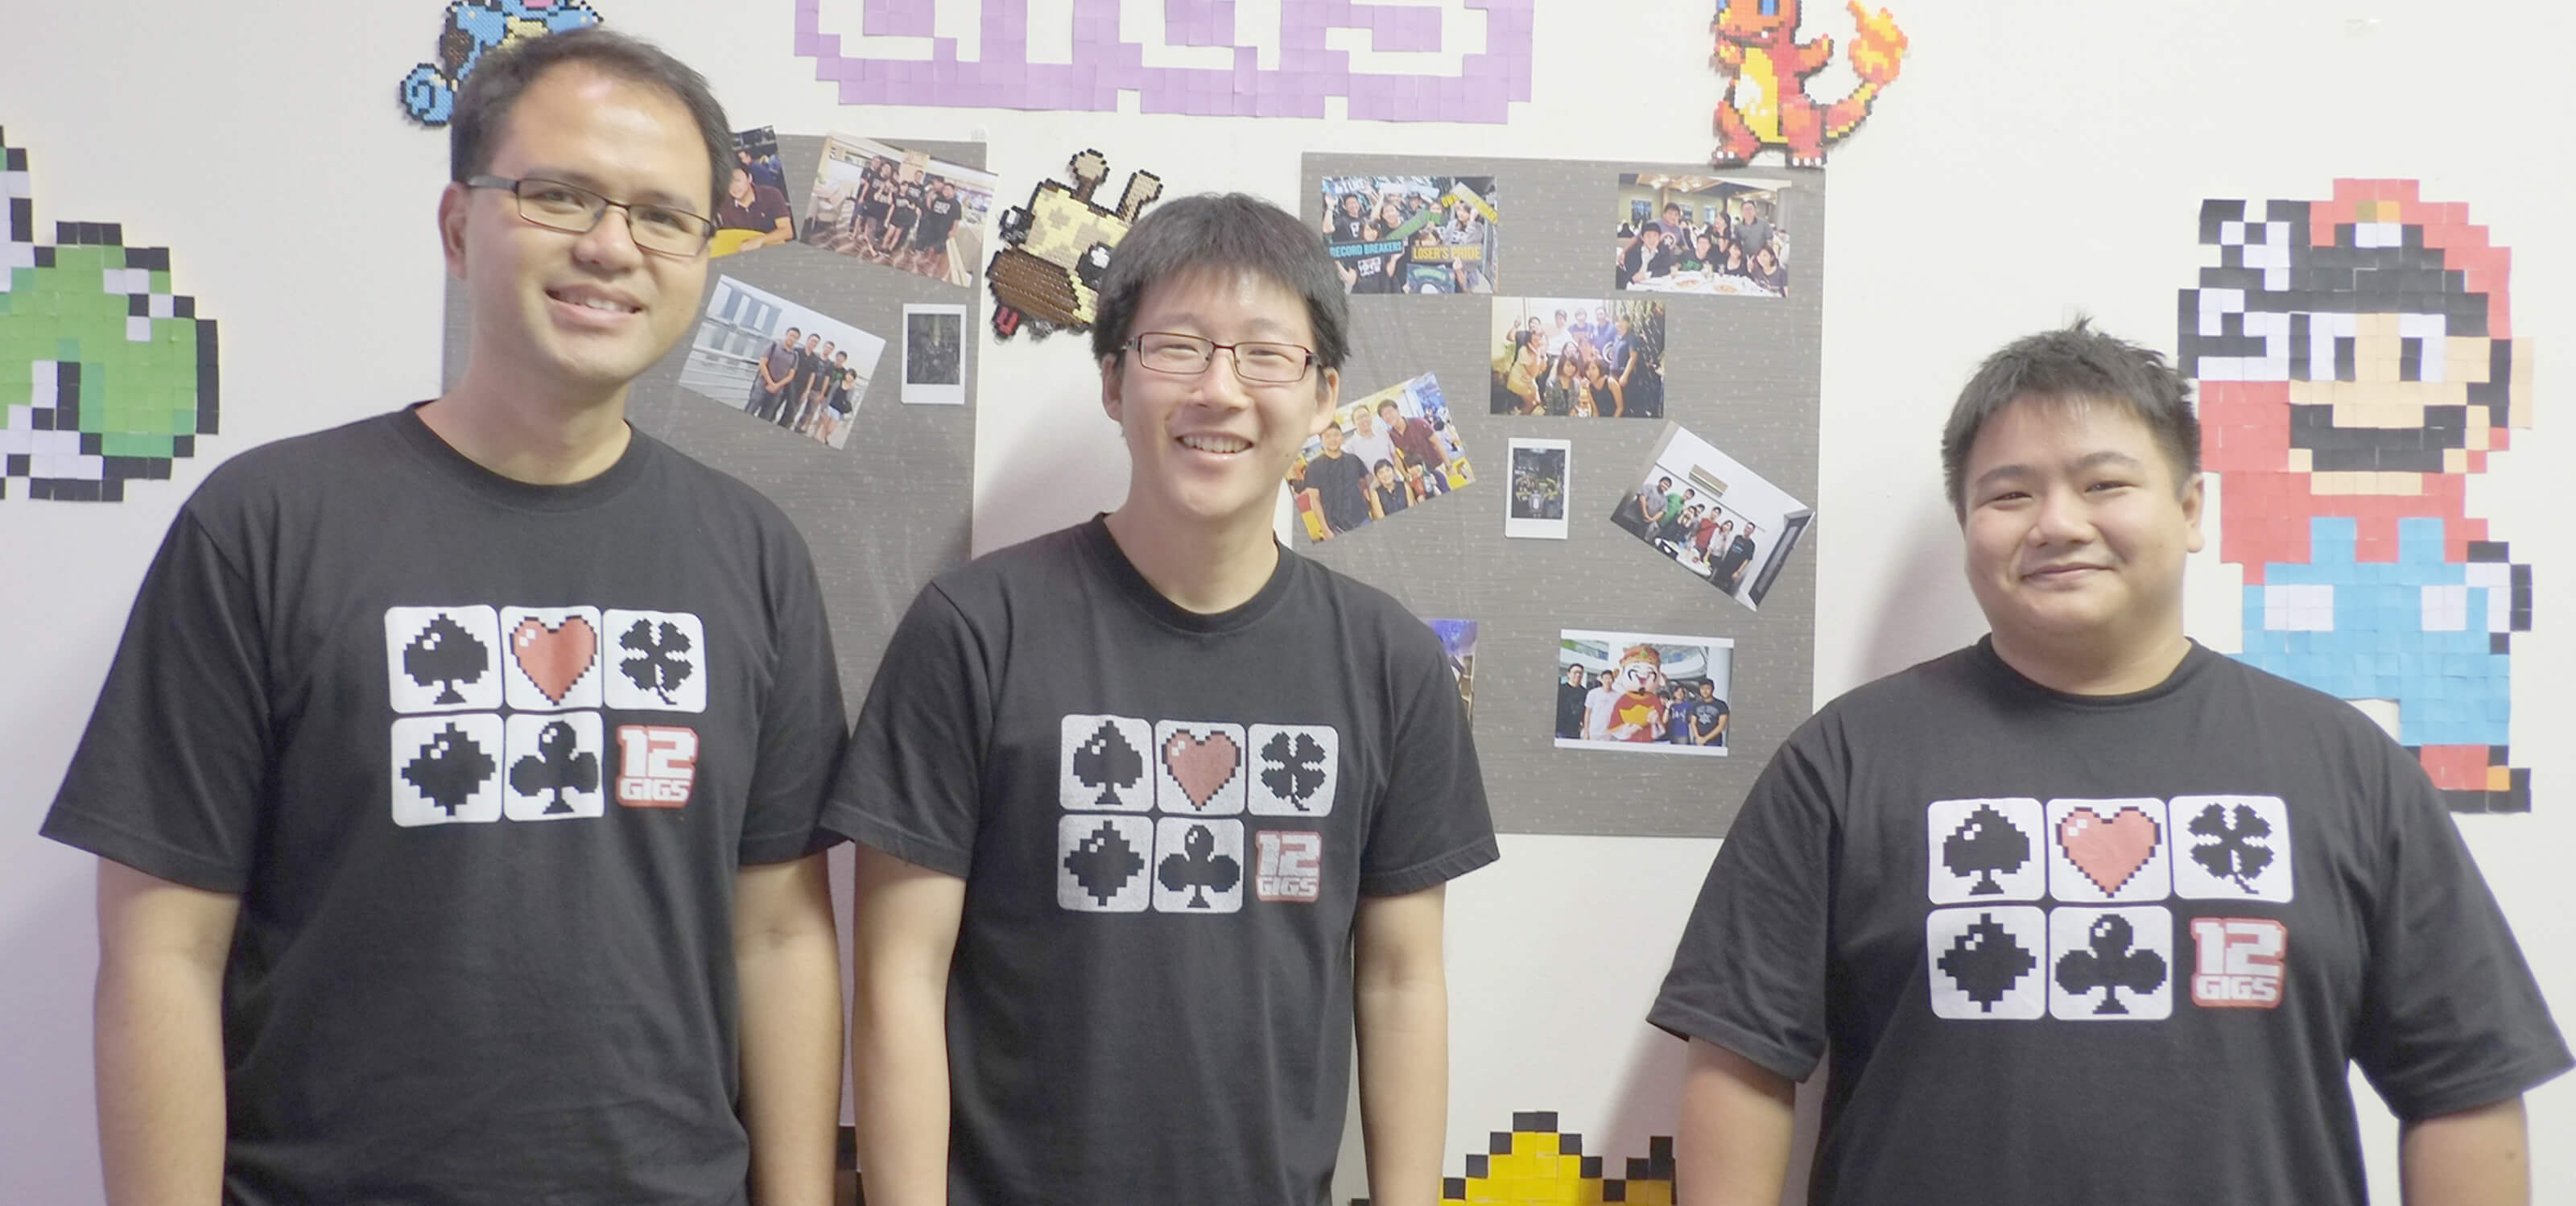 Three DigiPen graduates stand in front of a wall decorated with pixel art and the 12 Gigs logo wearing black t-shirts